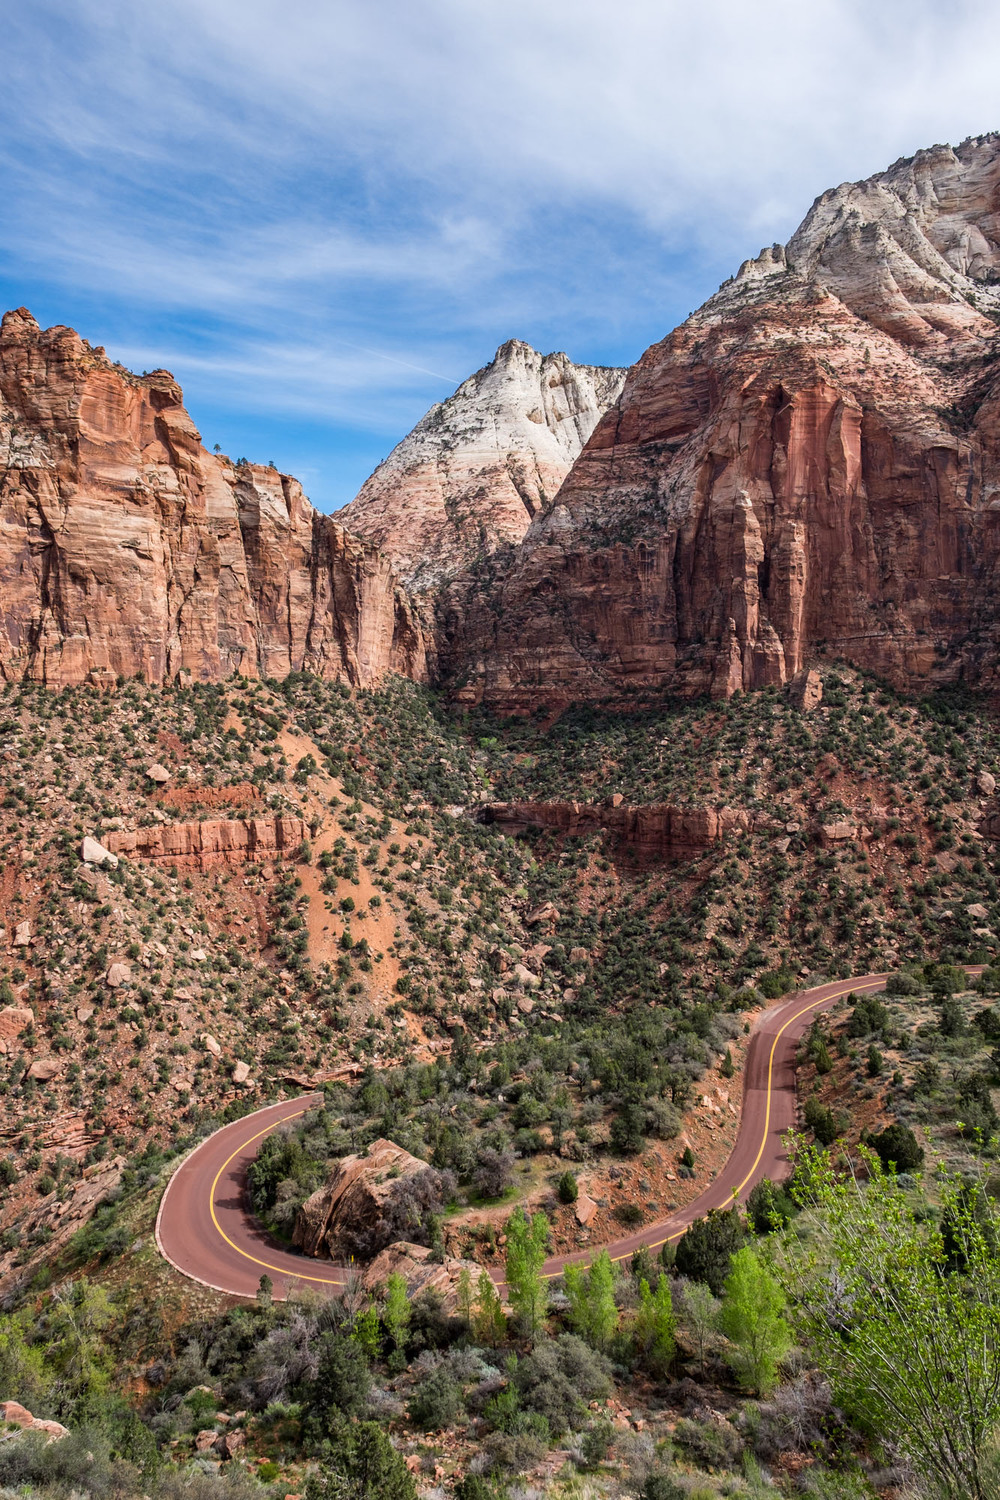 A shot taken just beyond the tunnel, looking down on the Zion Valley.